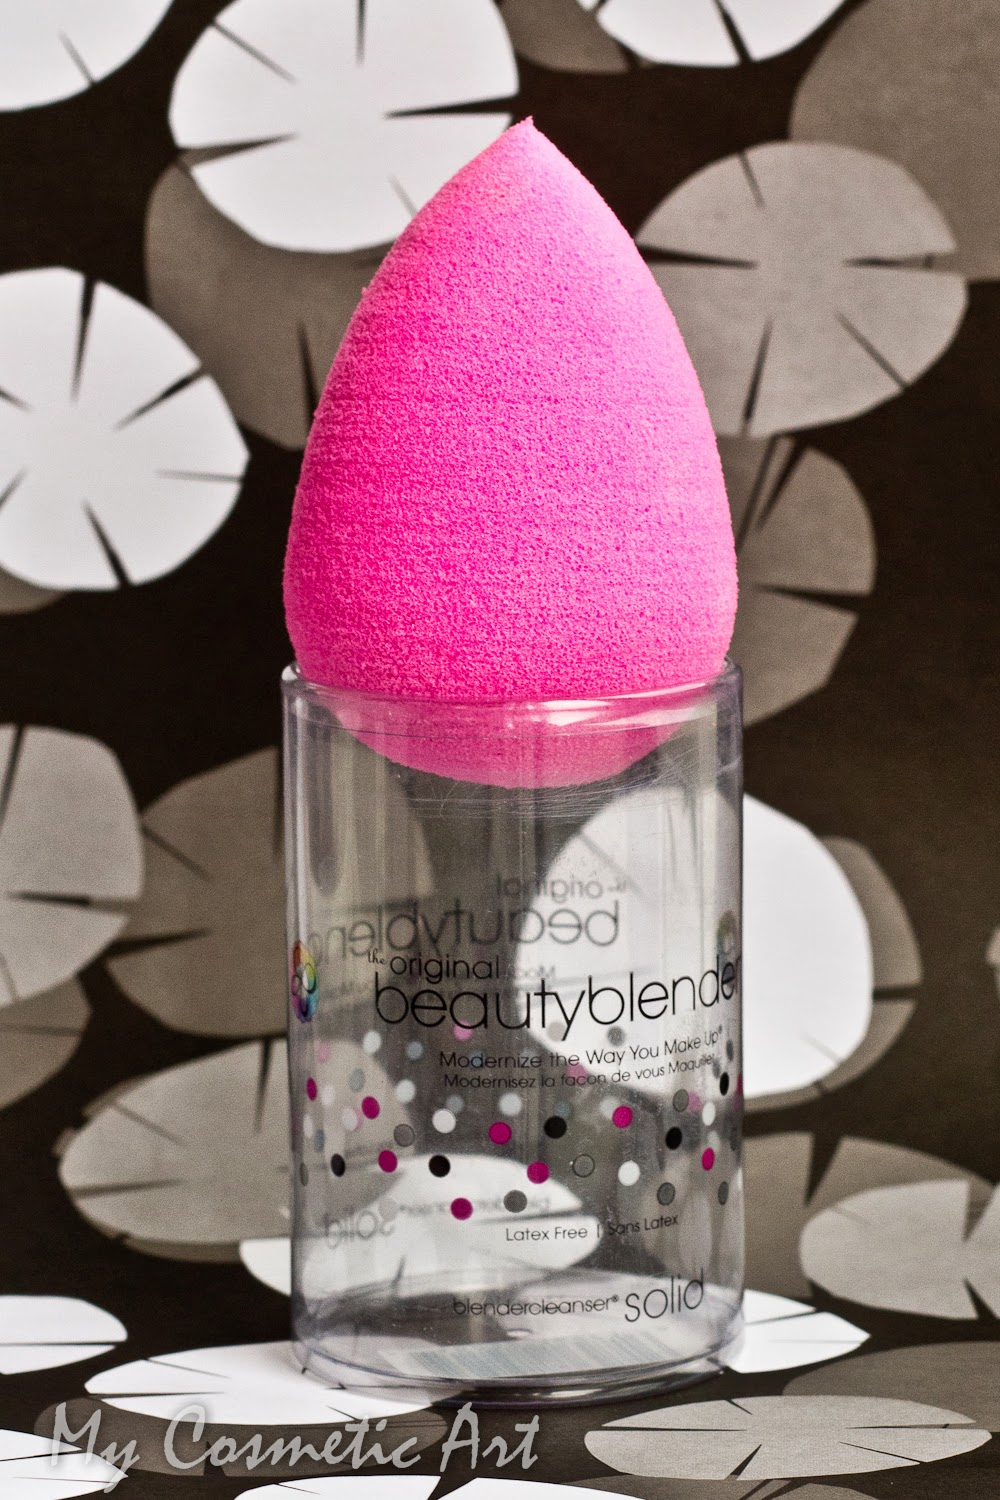 Beautyblender My Cosmetic Art Birchbox